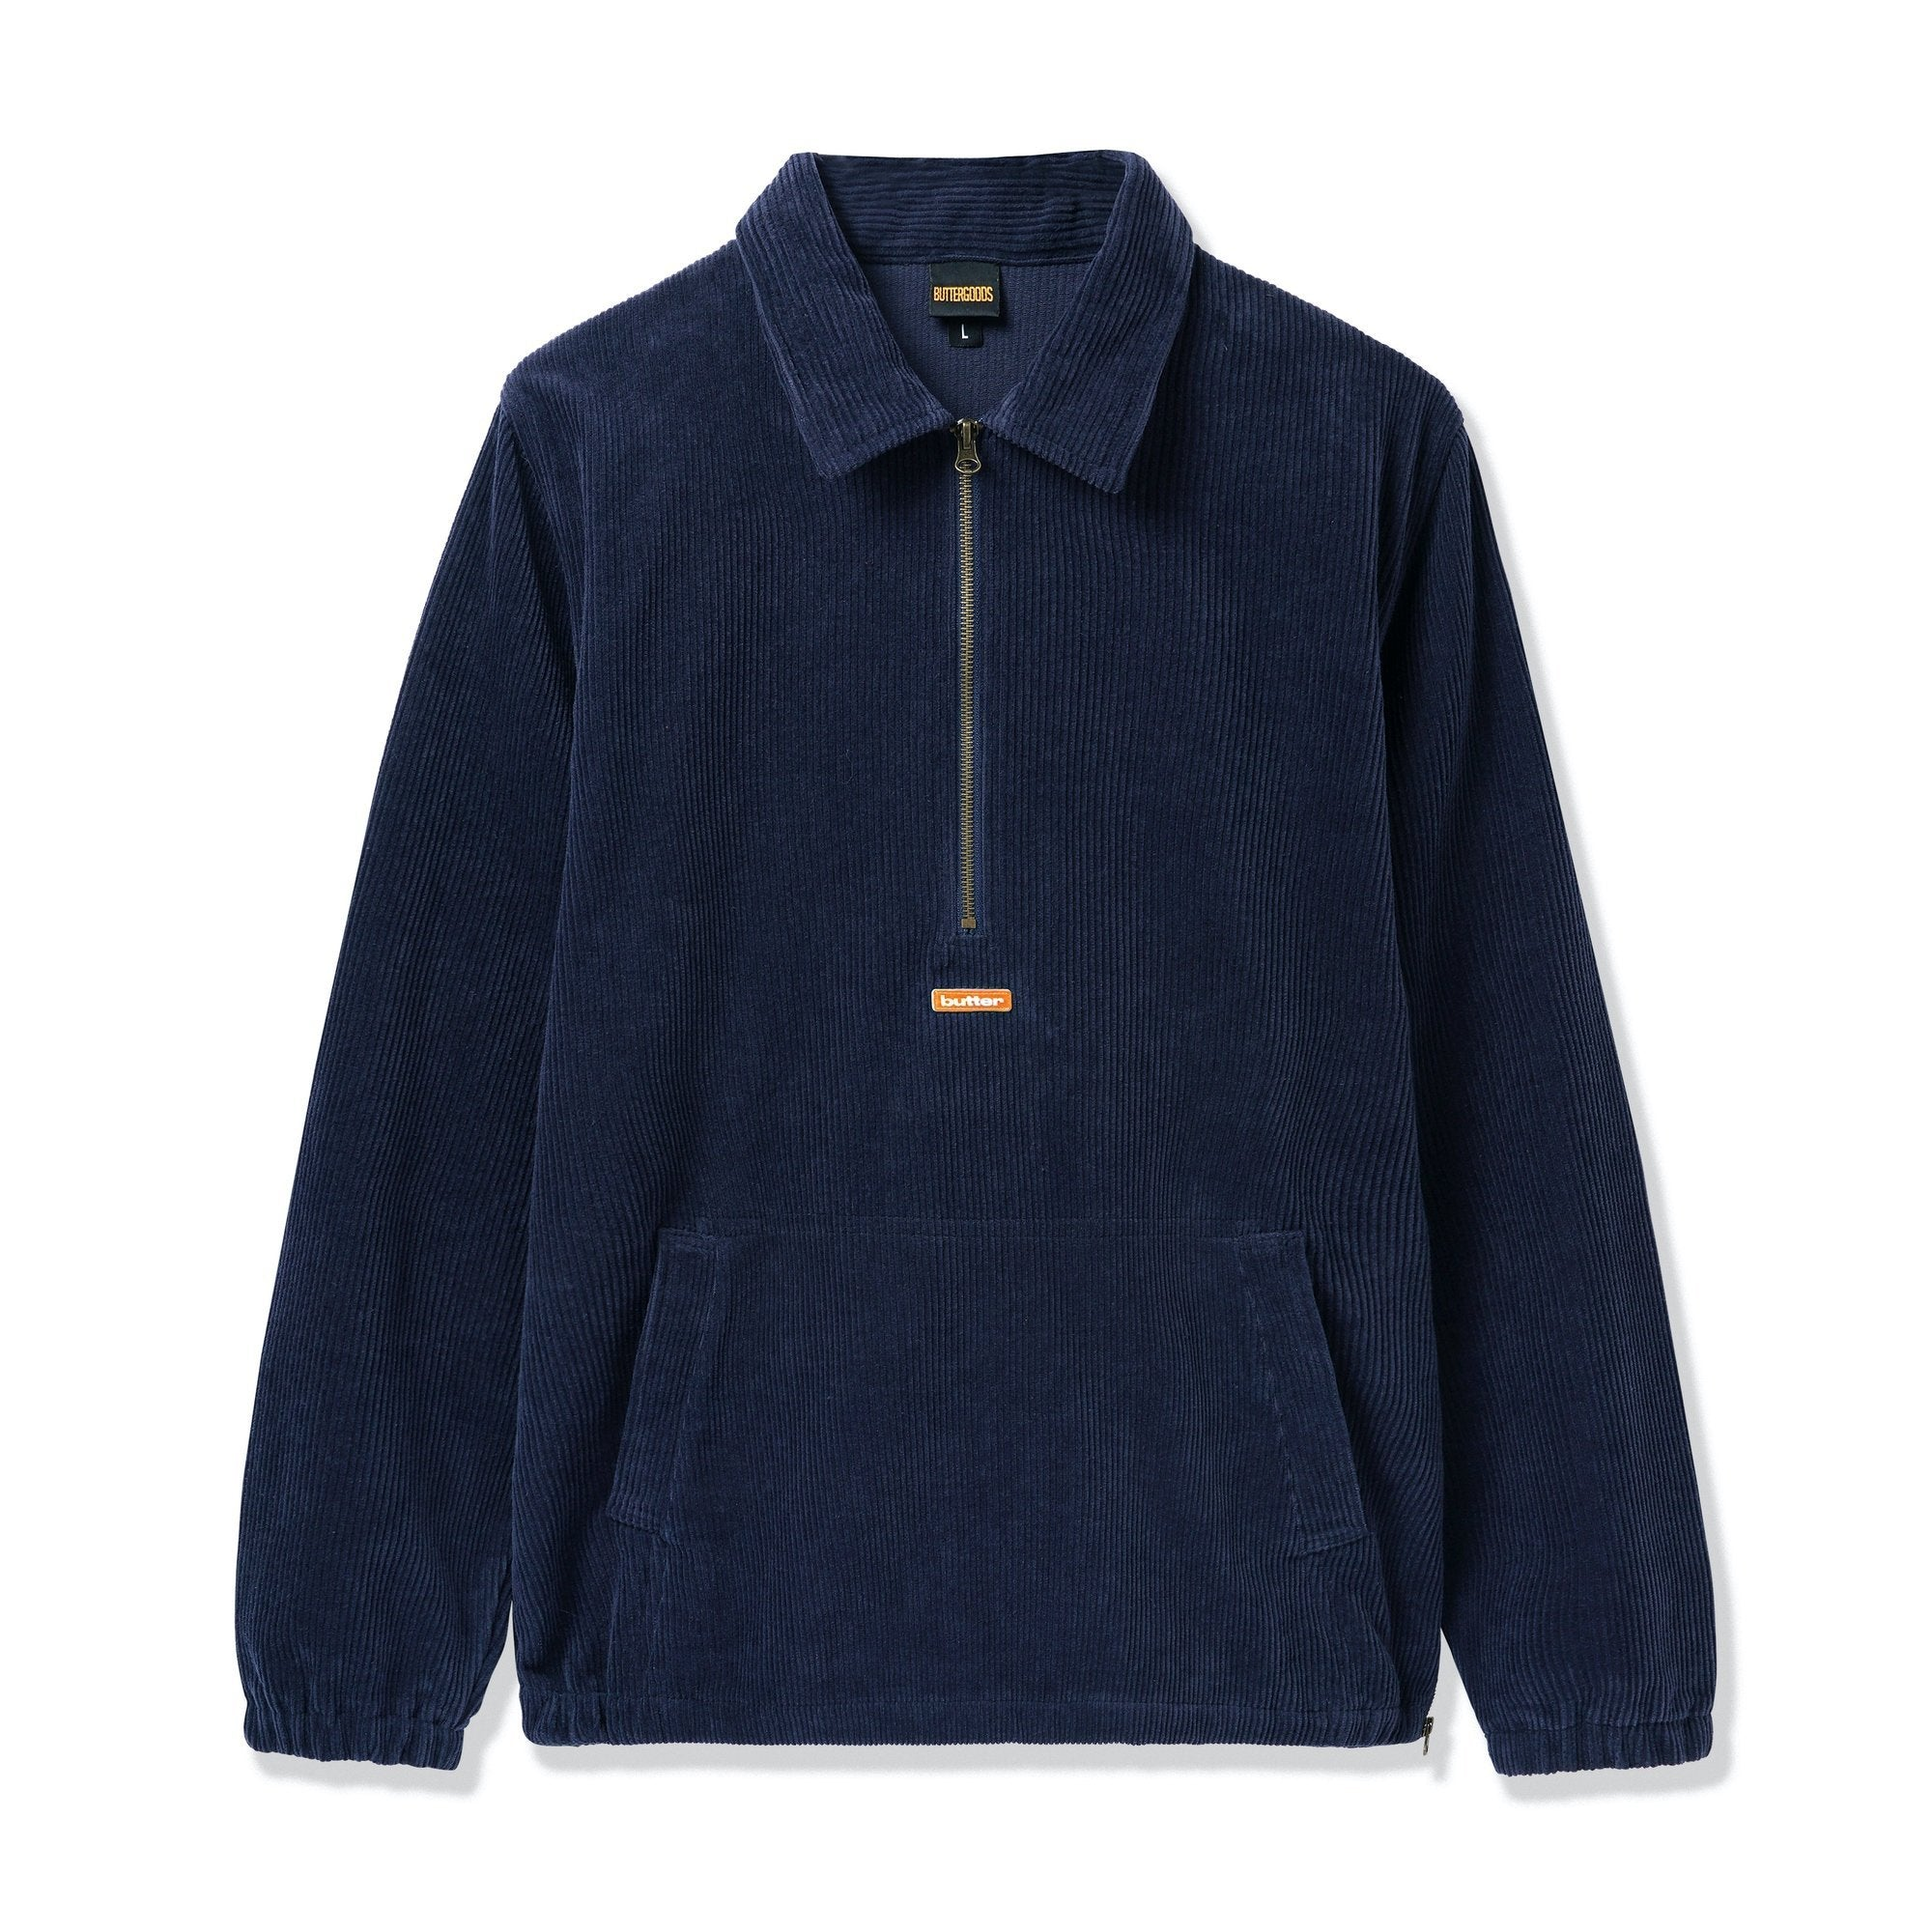 Butter Goods Ranger Pullover Cord Jacket Product Photo #1